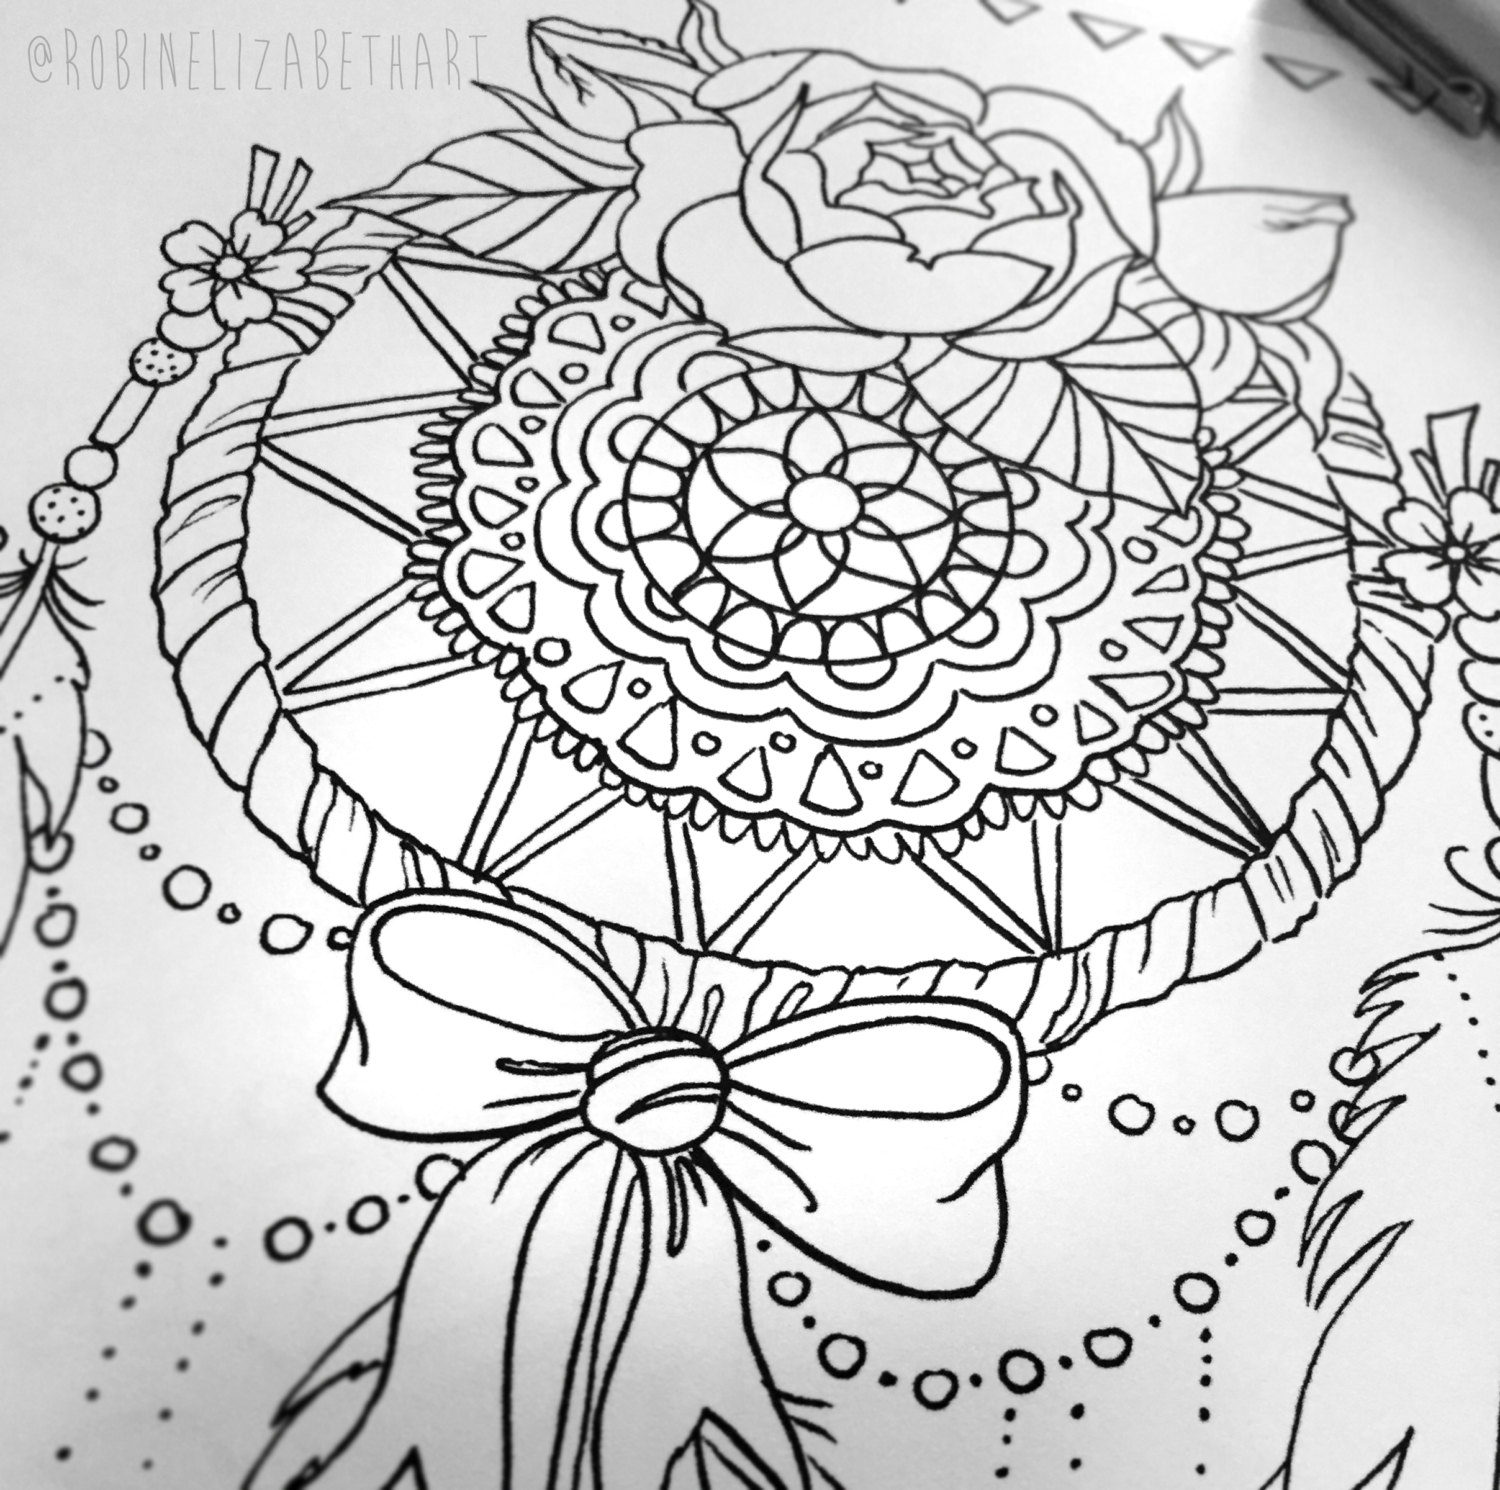 coloring pages for adults dream catchers 159 best dreamcatcher coloring pages for adults images on catchers dream adults coloring for pages